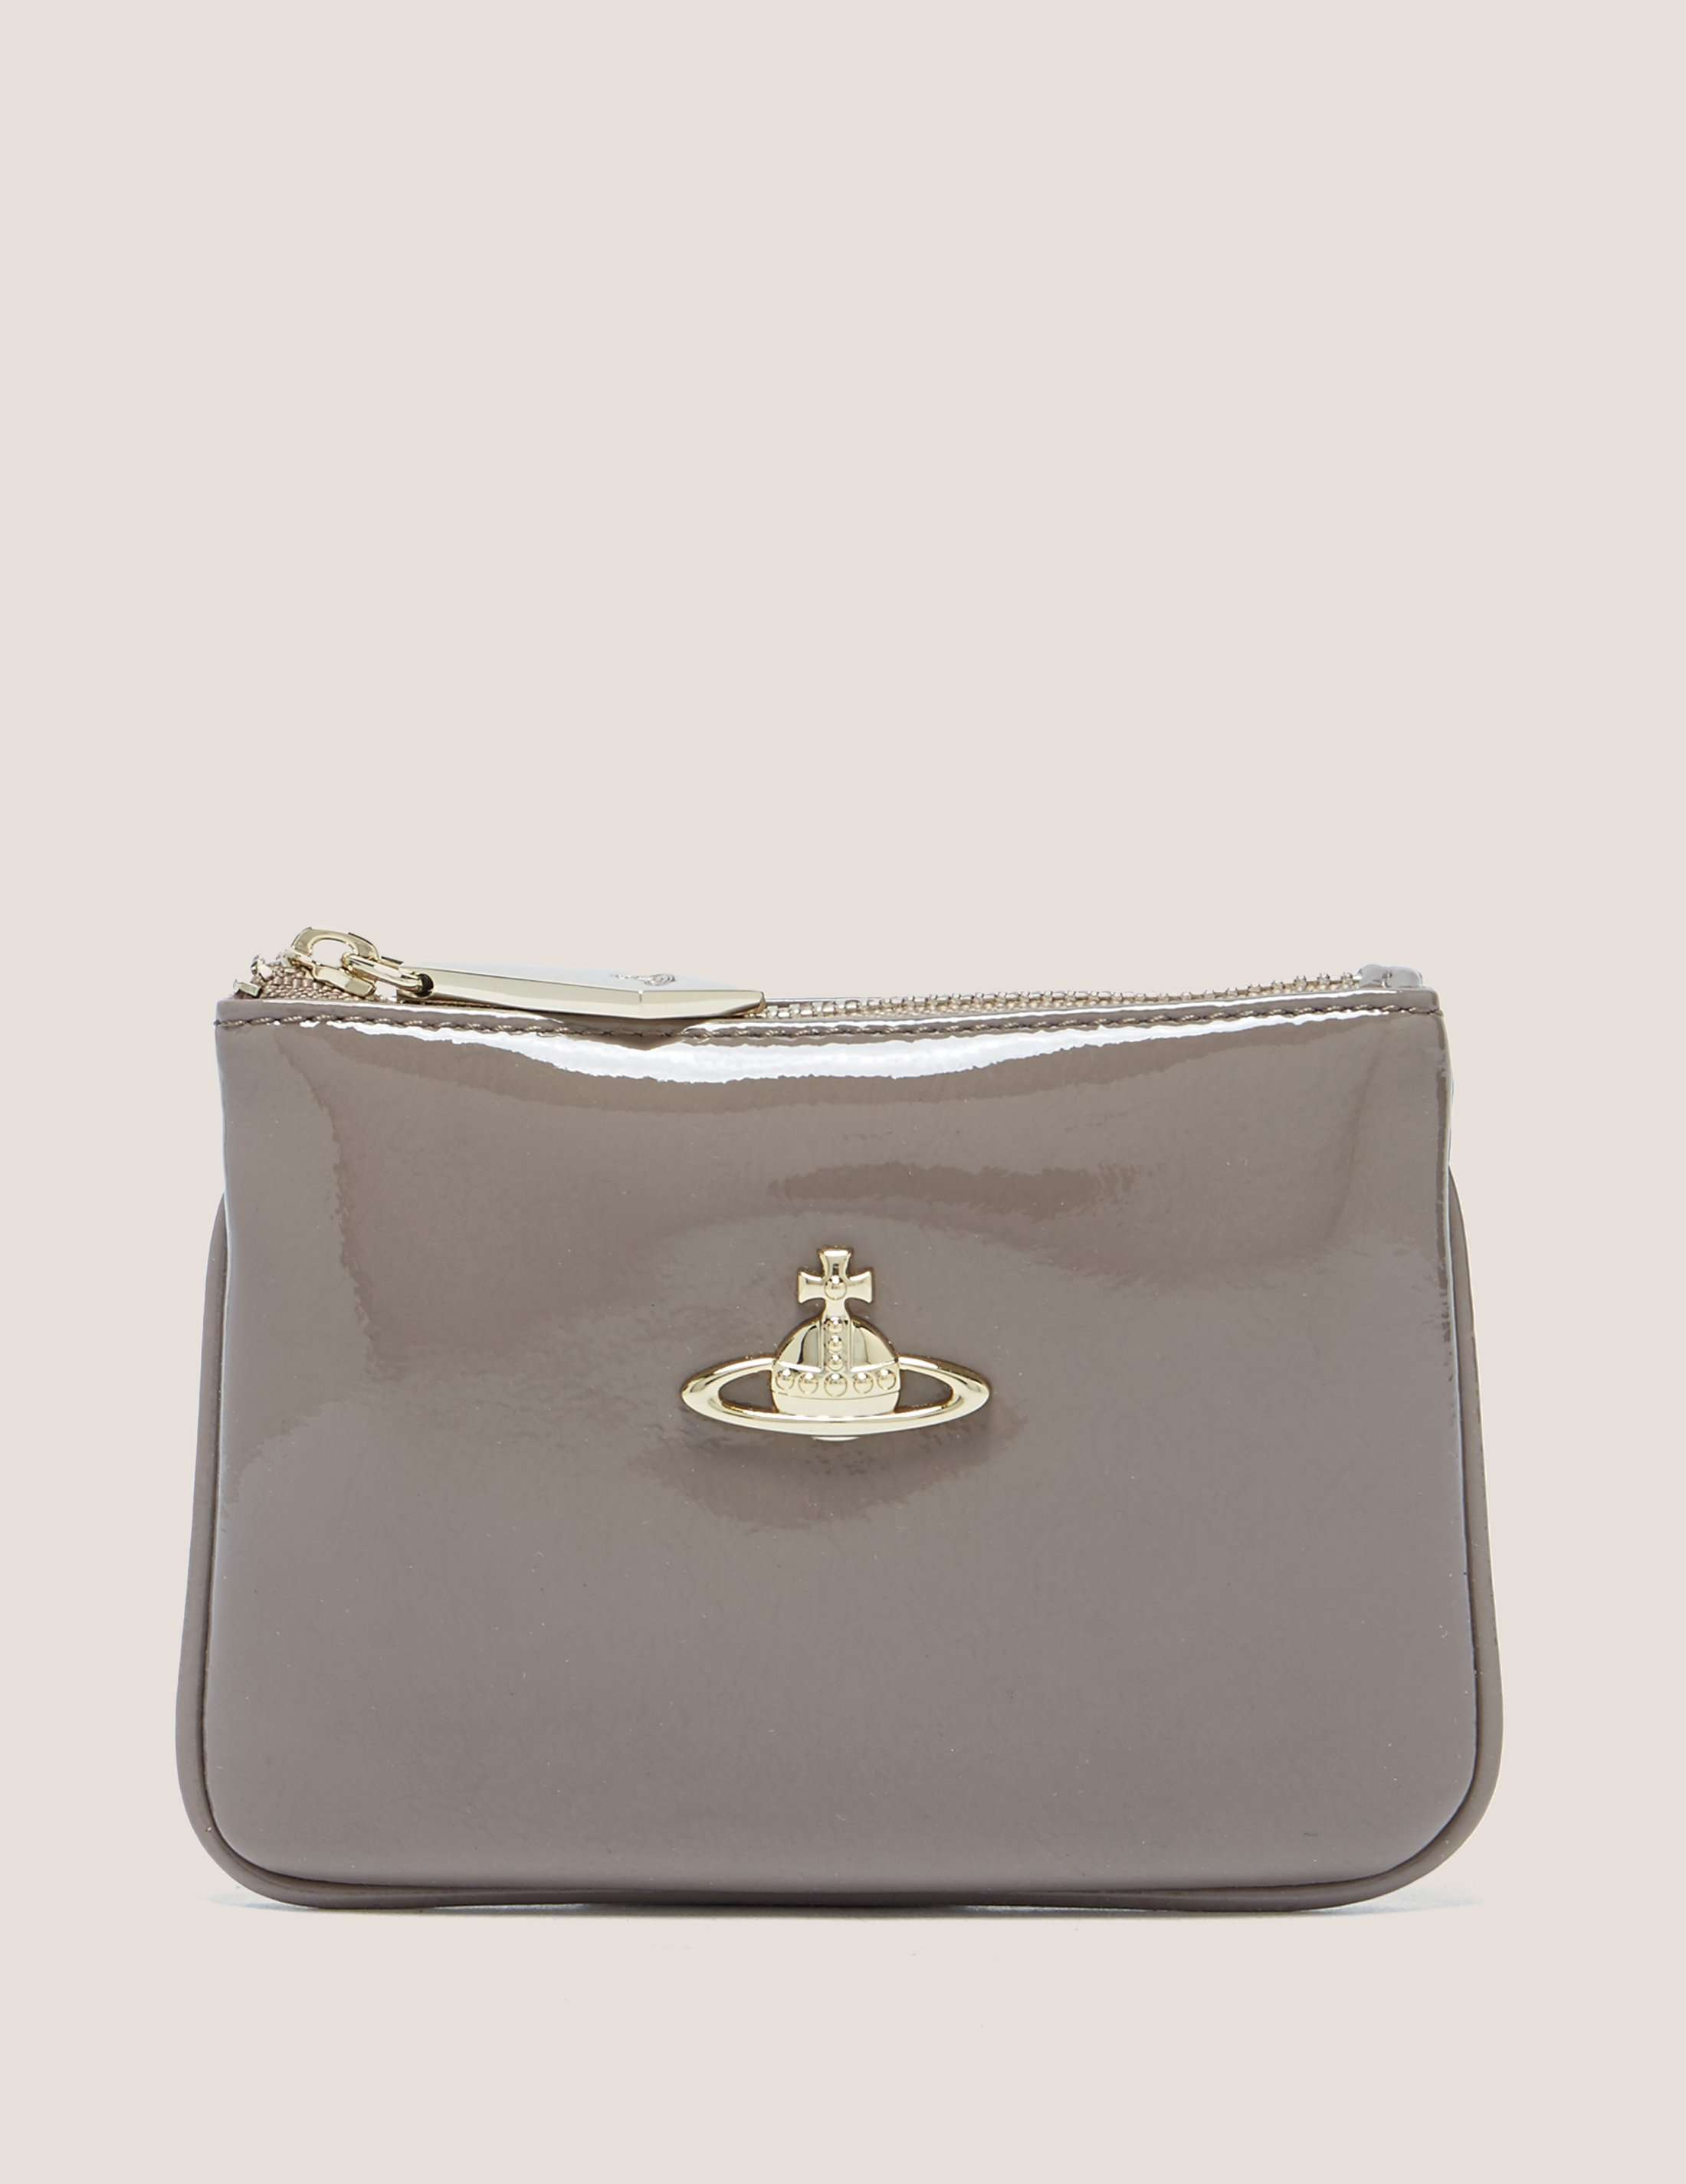 Vivienne Westwood Margate Pouch